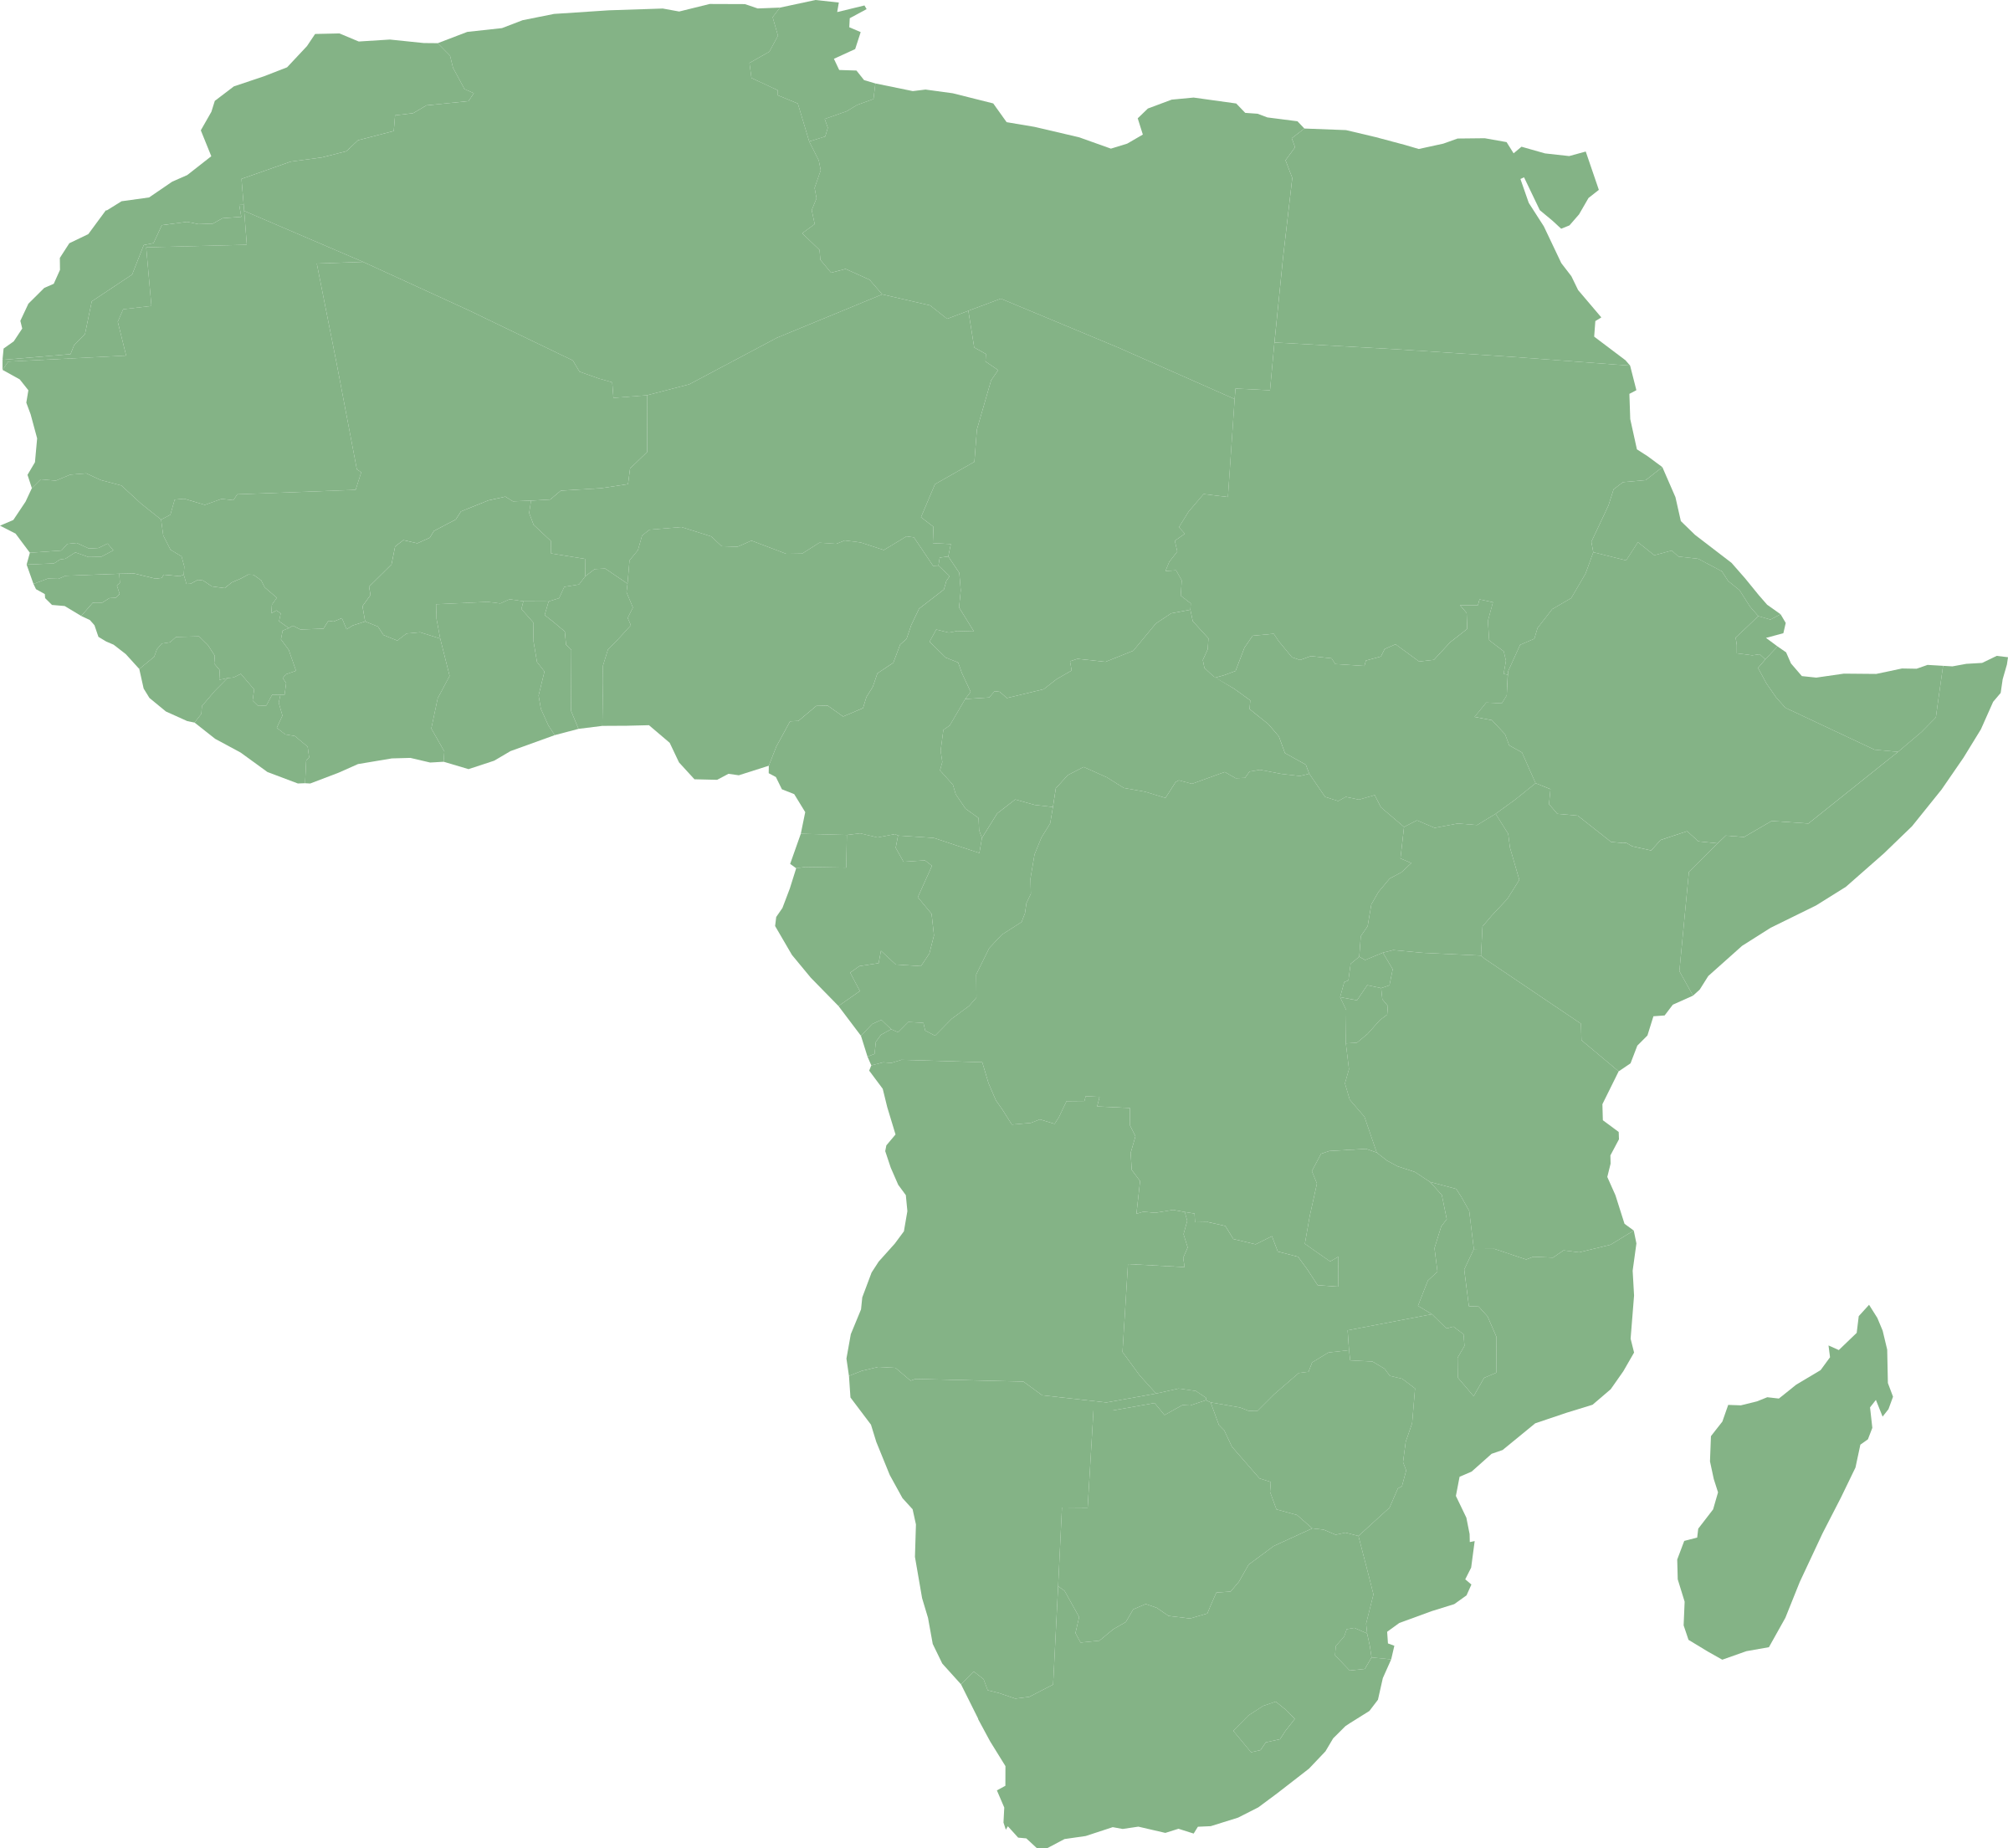 Map of Africa with countries in cylindrical equal area projection by Suzana_K